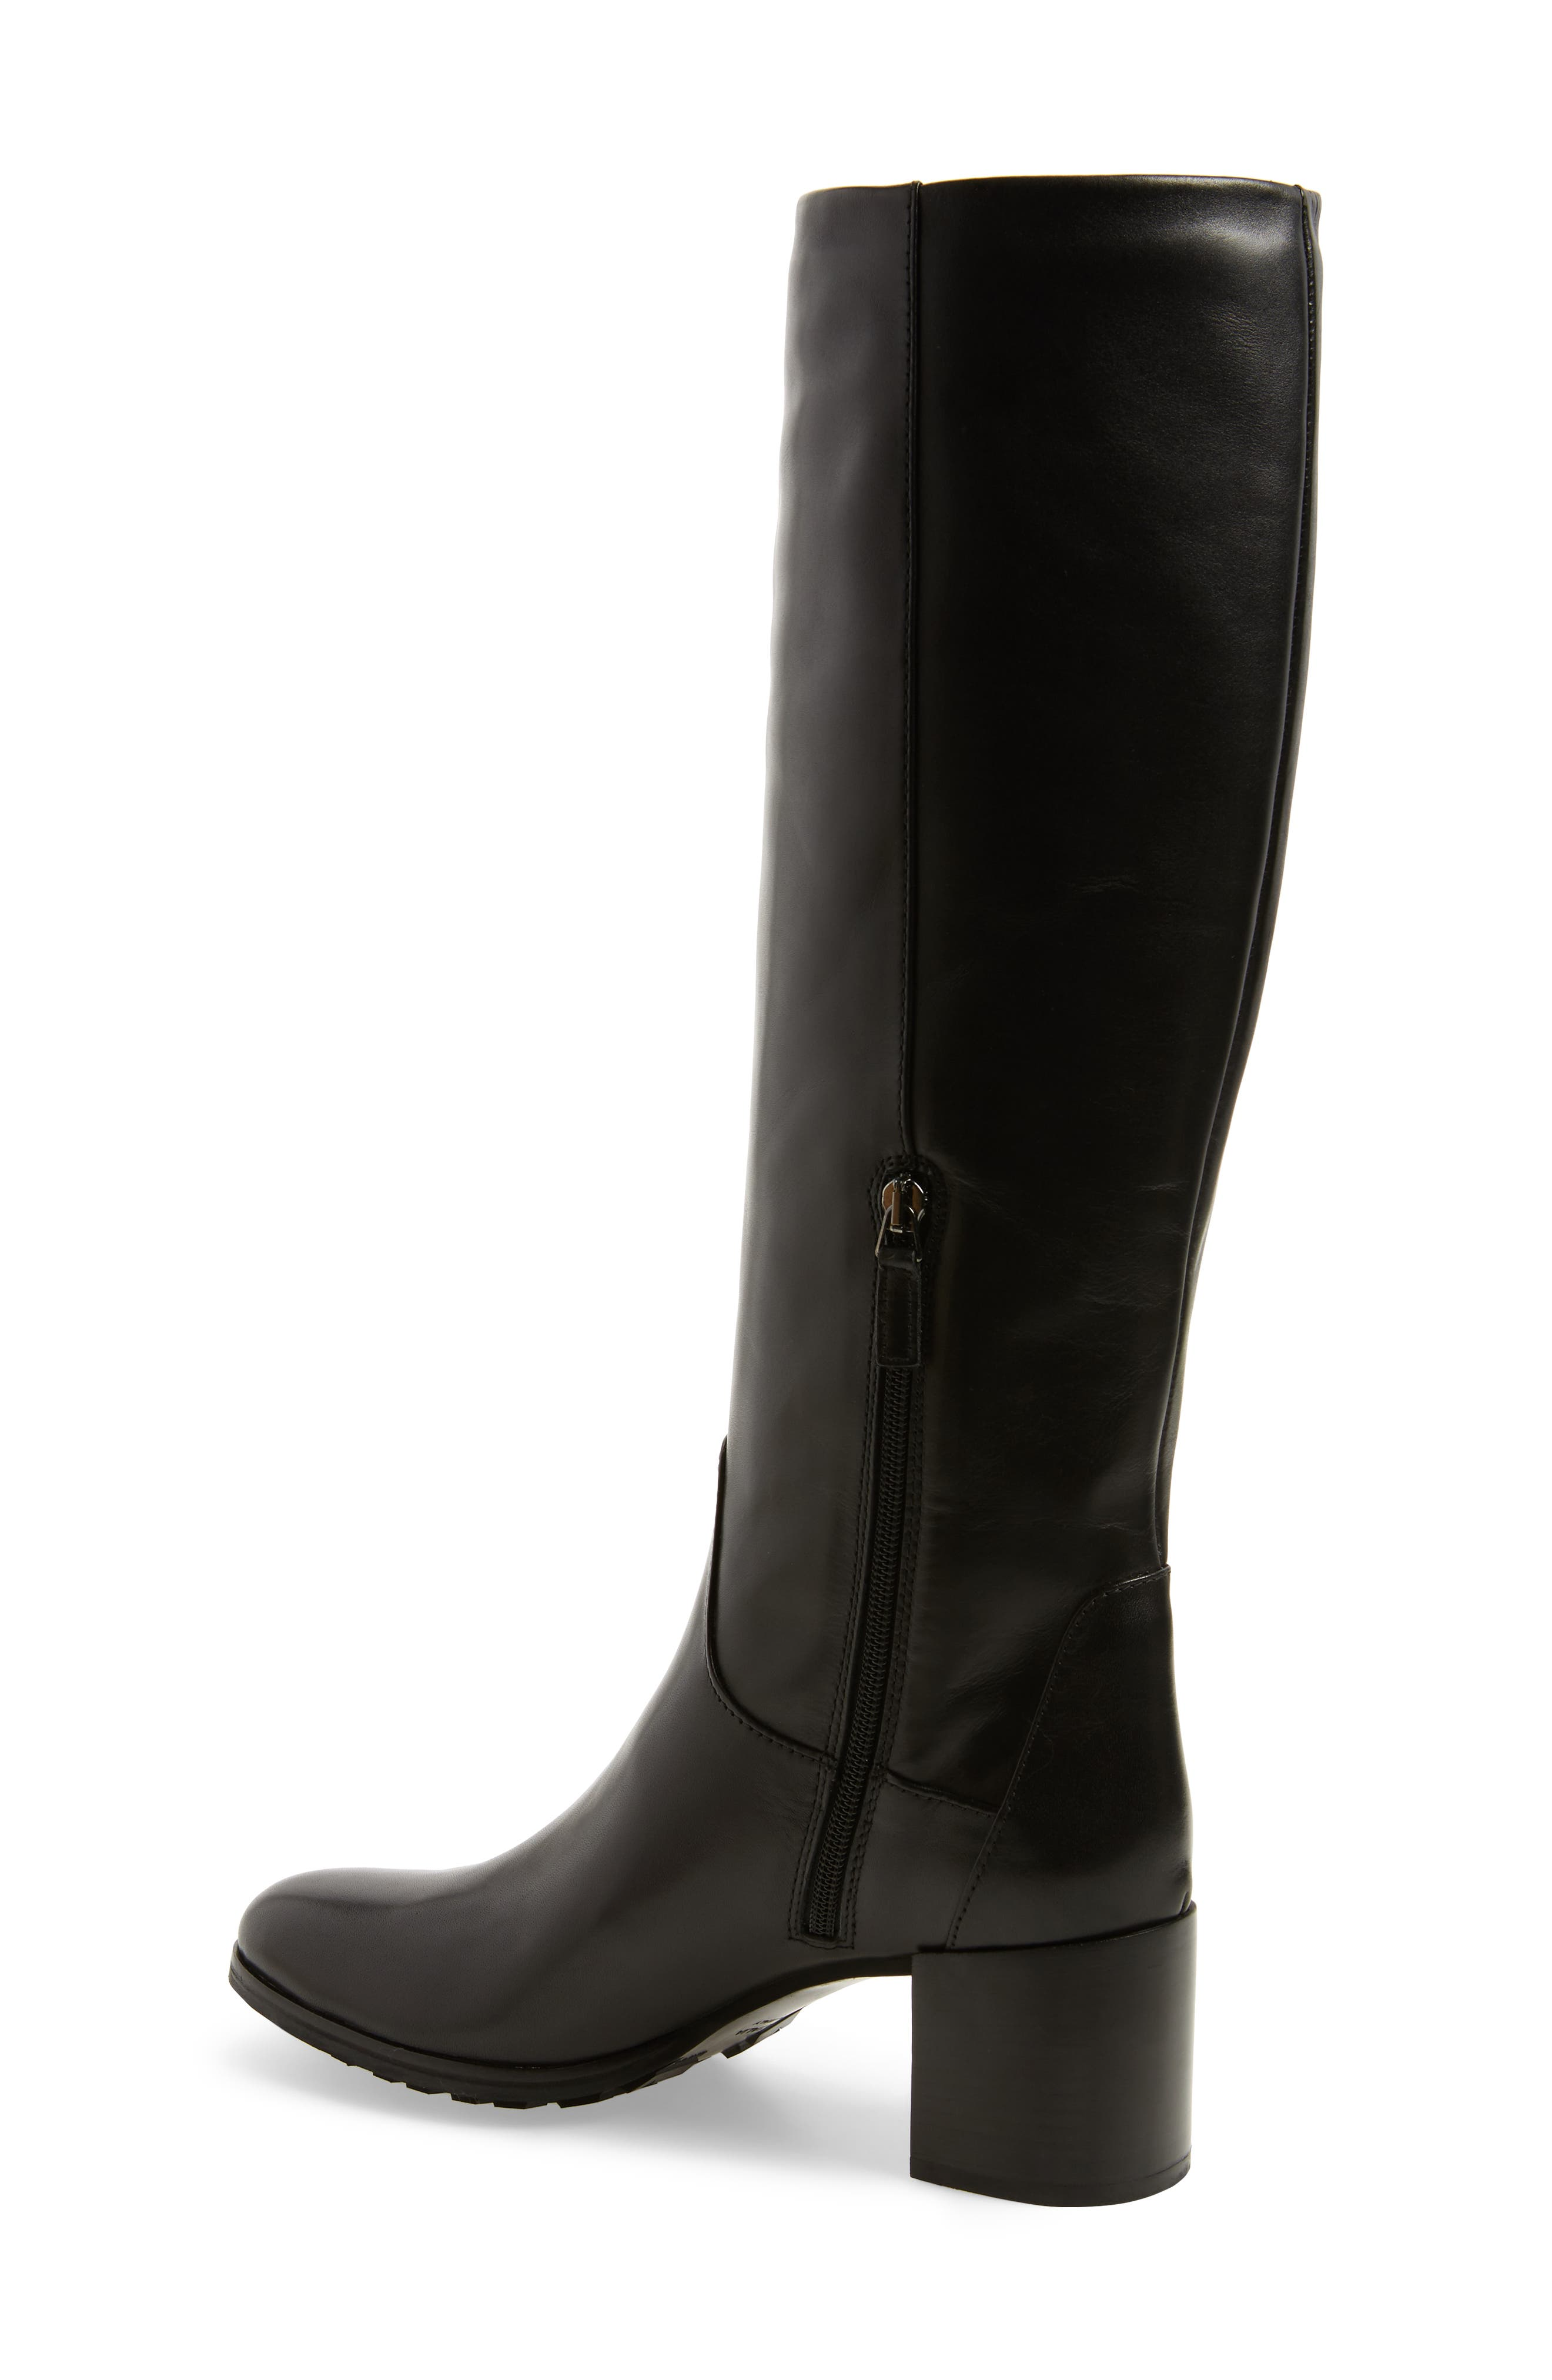 Evelin Weatherproof Knee High Boot,                             Alternate thumbnail 2, color,                             Black Calf